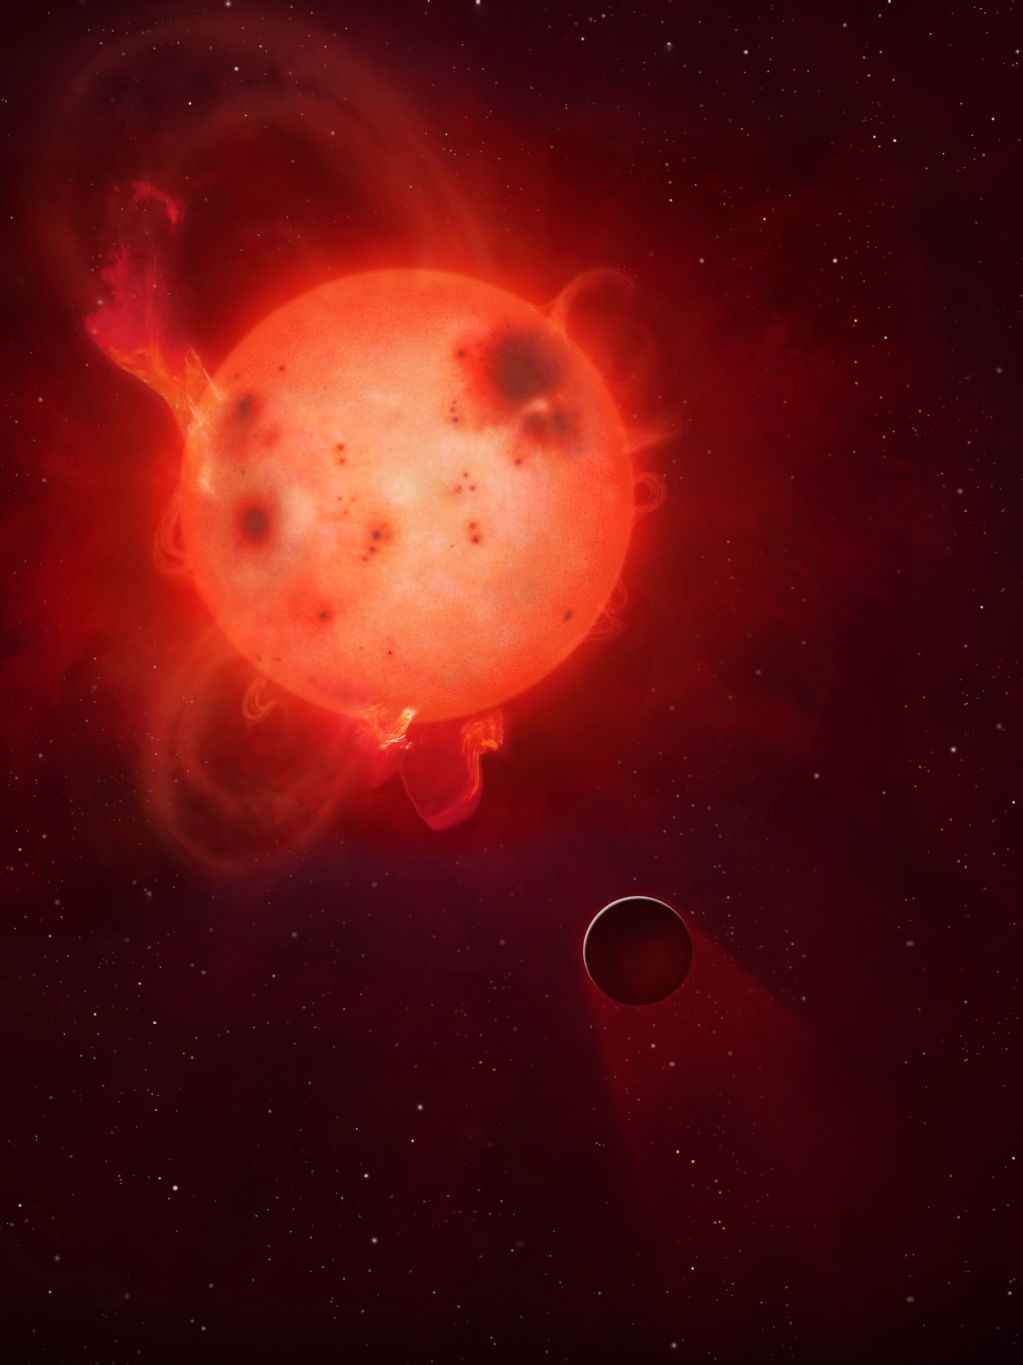 Earth-Like Exoplanet May Be Too Radiation-Blasted to Host Life